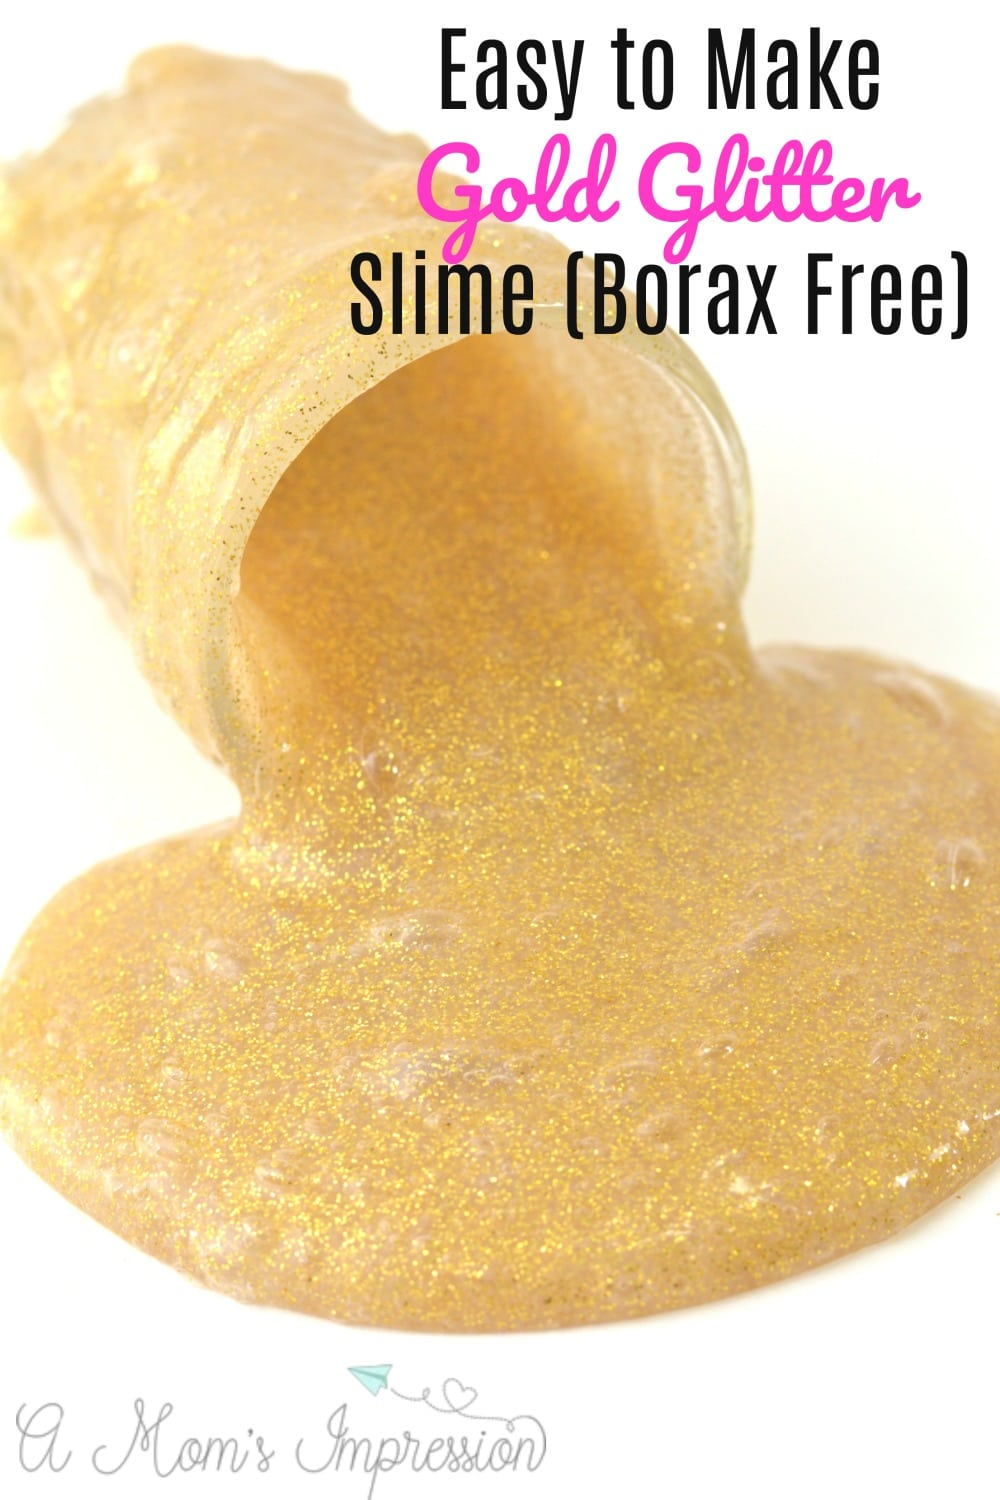 This DIY gold glitter slime recipe is simple to make in minutes and is made without Borax. Using just 2 ingredients (glitter glue and liquid starch), even your littlest one can help in the fun!